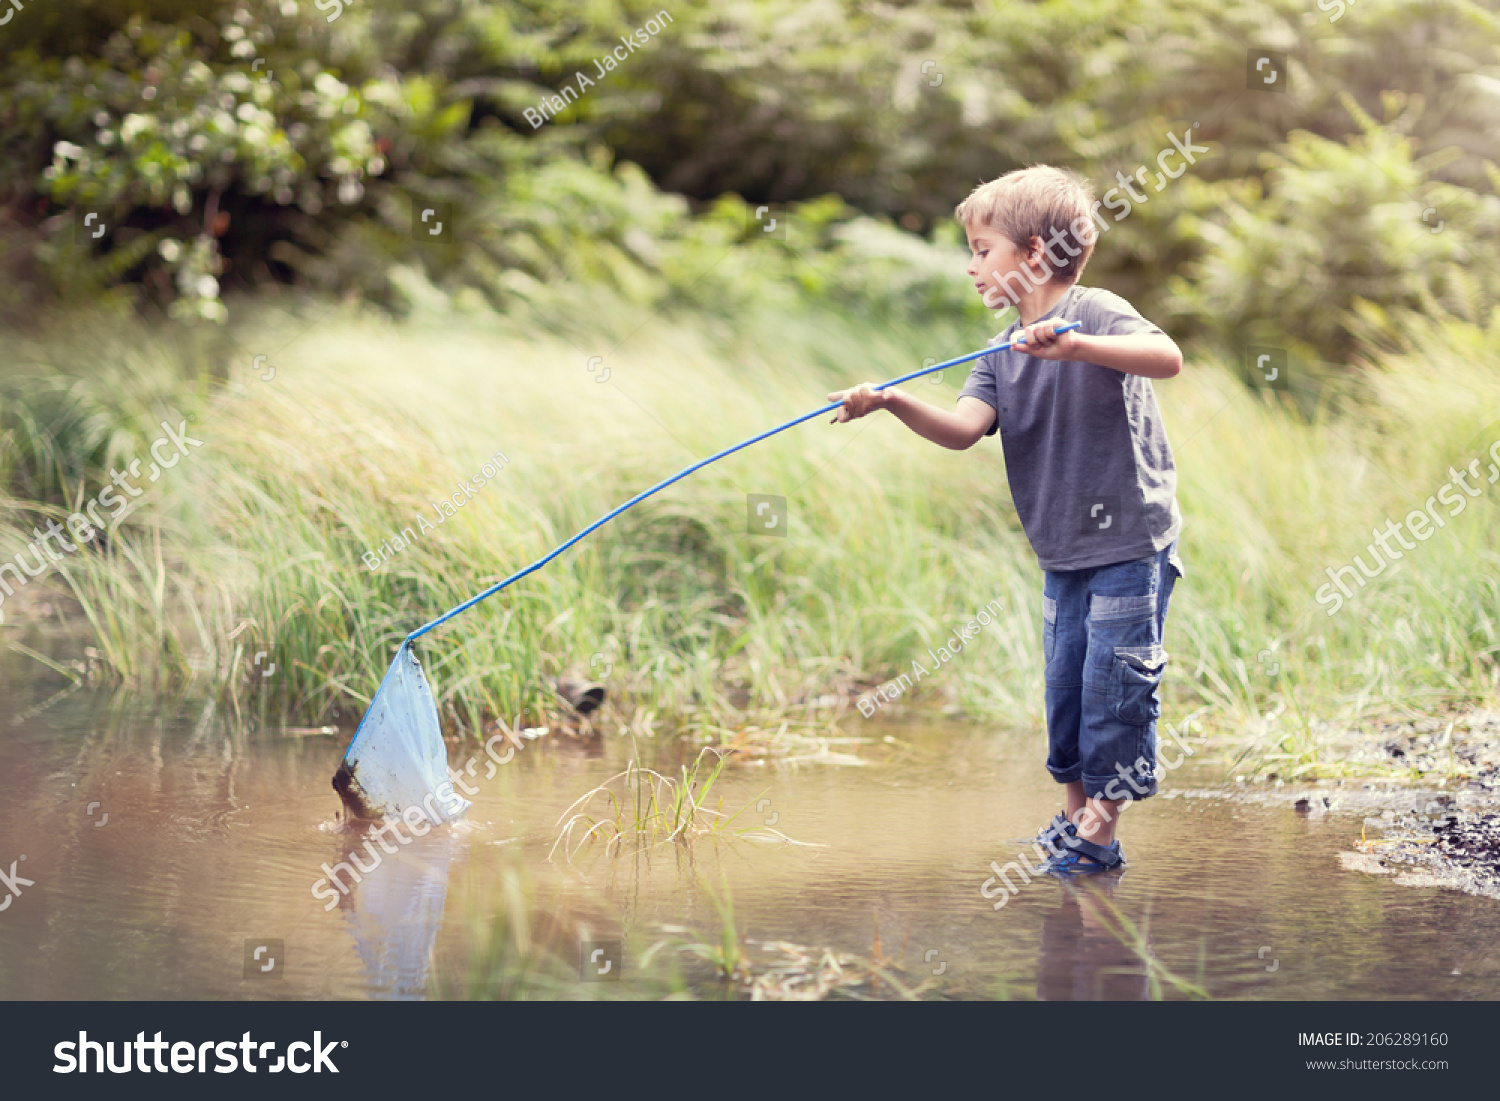 Boy in a pond with a fishing net catching fish in the for Fish catching net